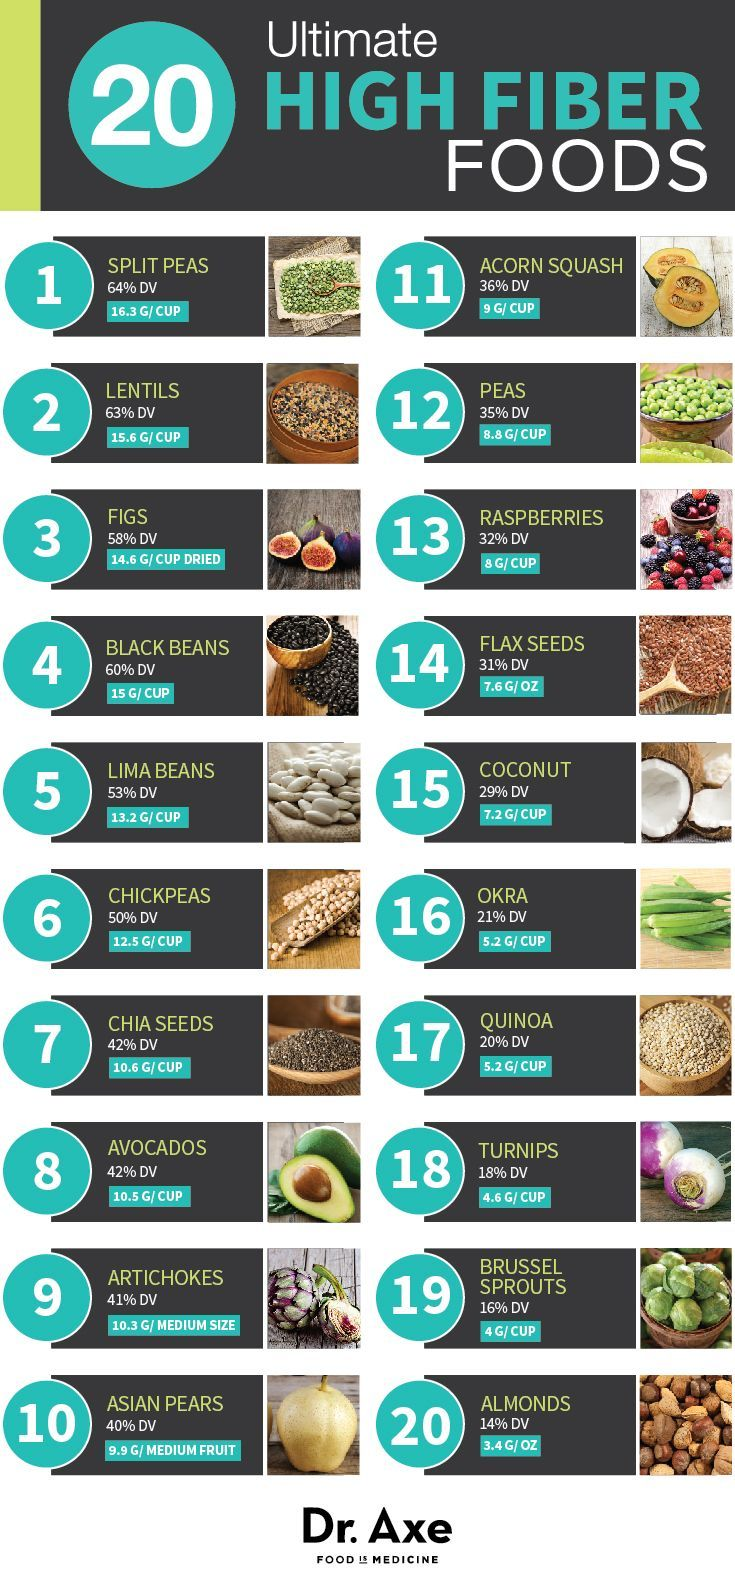 Daily diet for good health - 20 Ultimate High Fiber Foods Fibre Is Essential For Good Digestion And Helps Utilise The Food We Eat To Maximum Efficiency Go With Your Gut And Ensure You